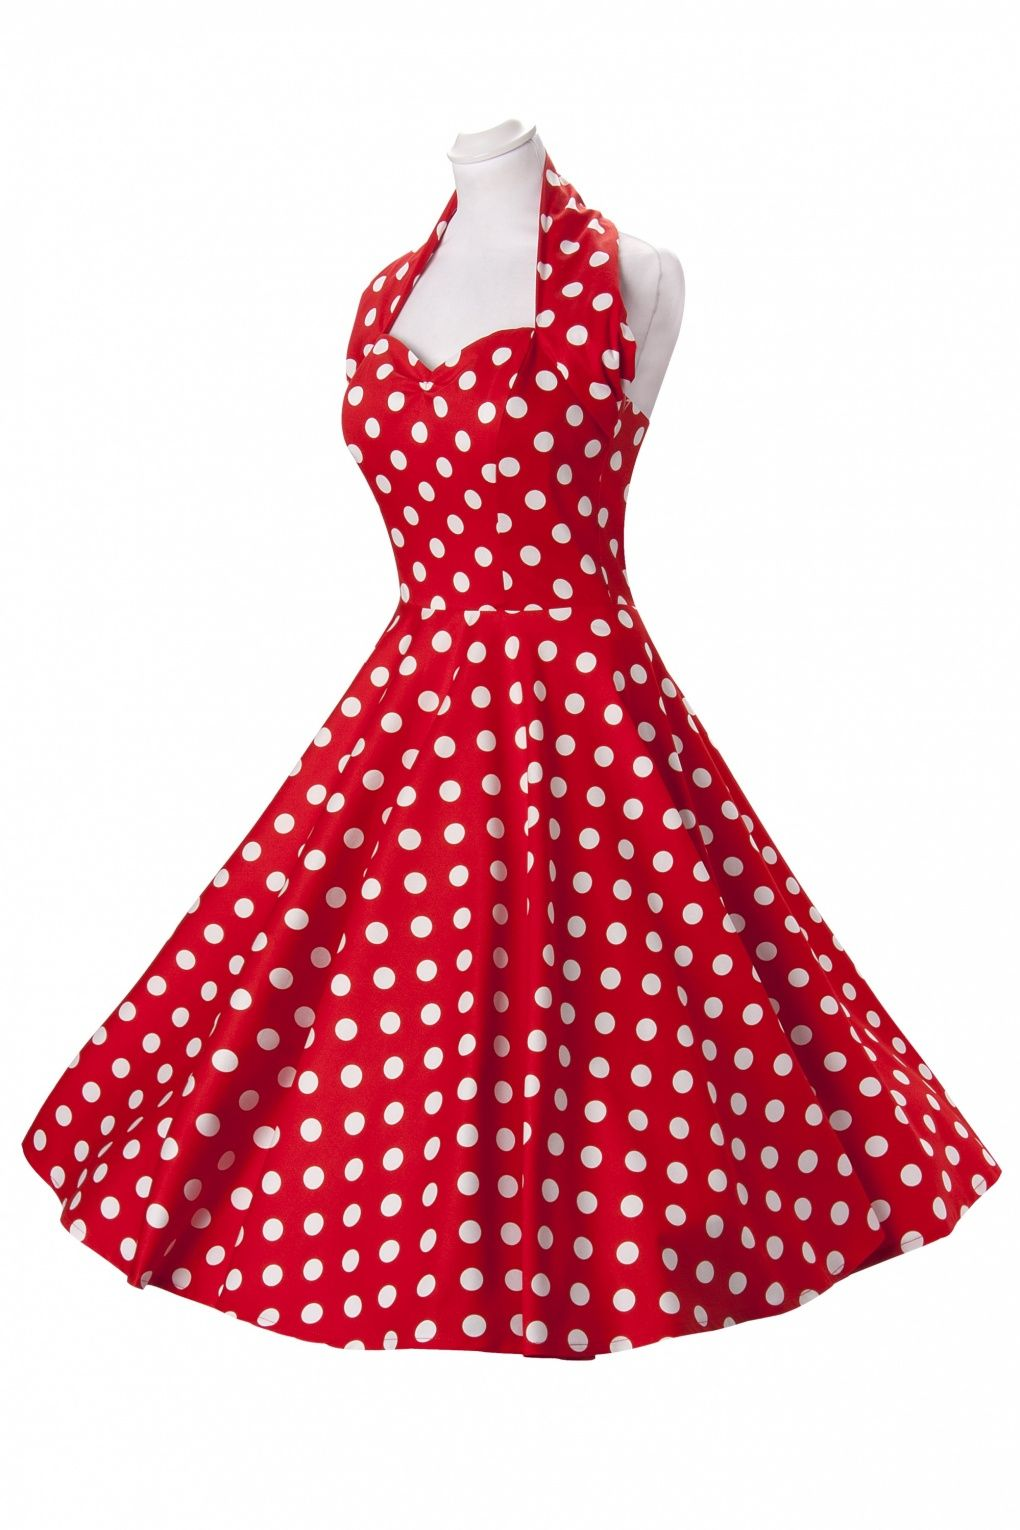 e66059989c 50s Retro halter Polka Dot Red White swing dress cotton sateen in ...